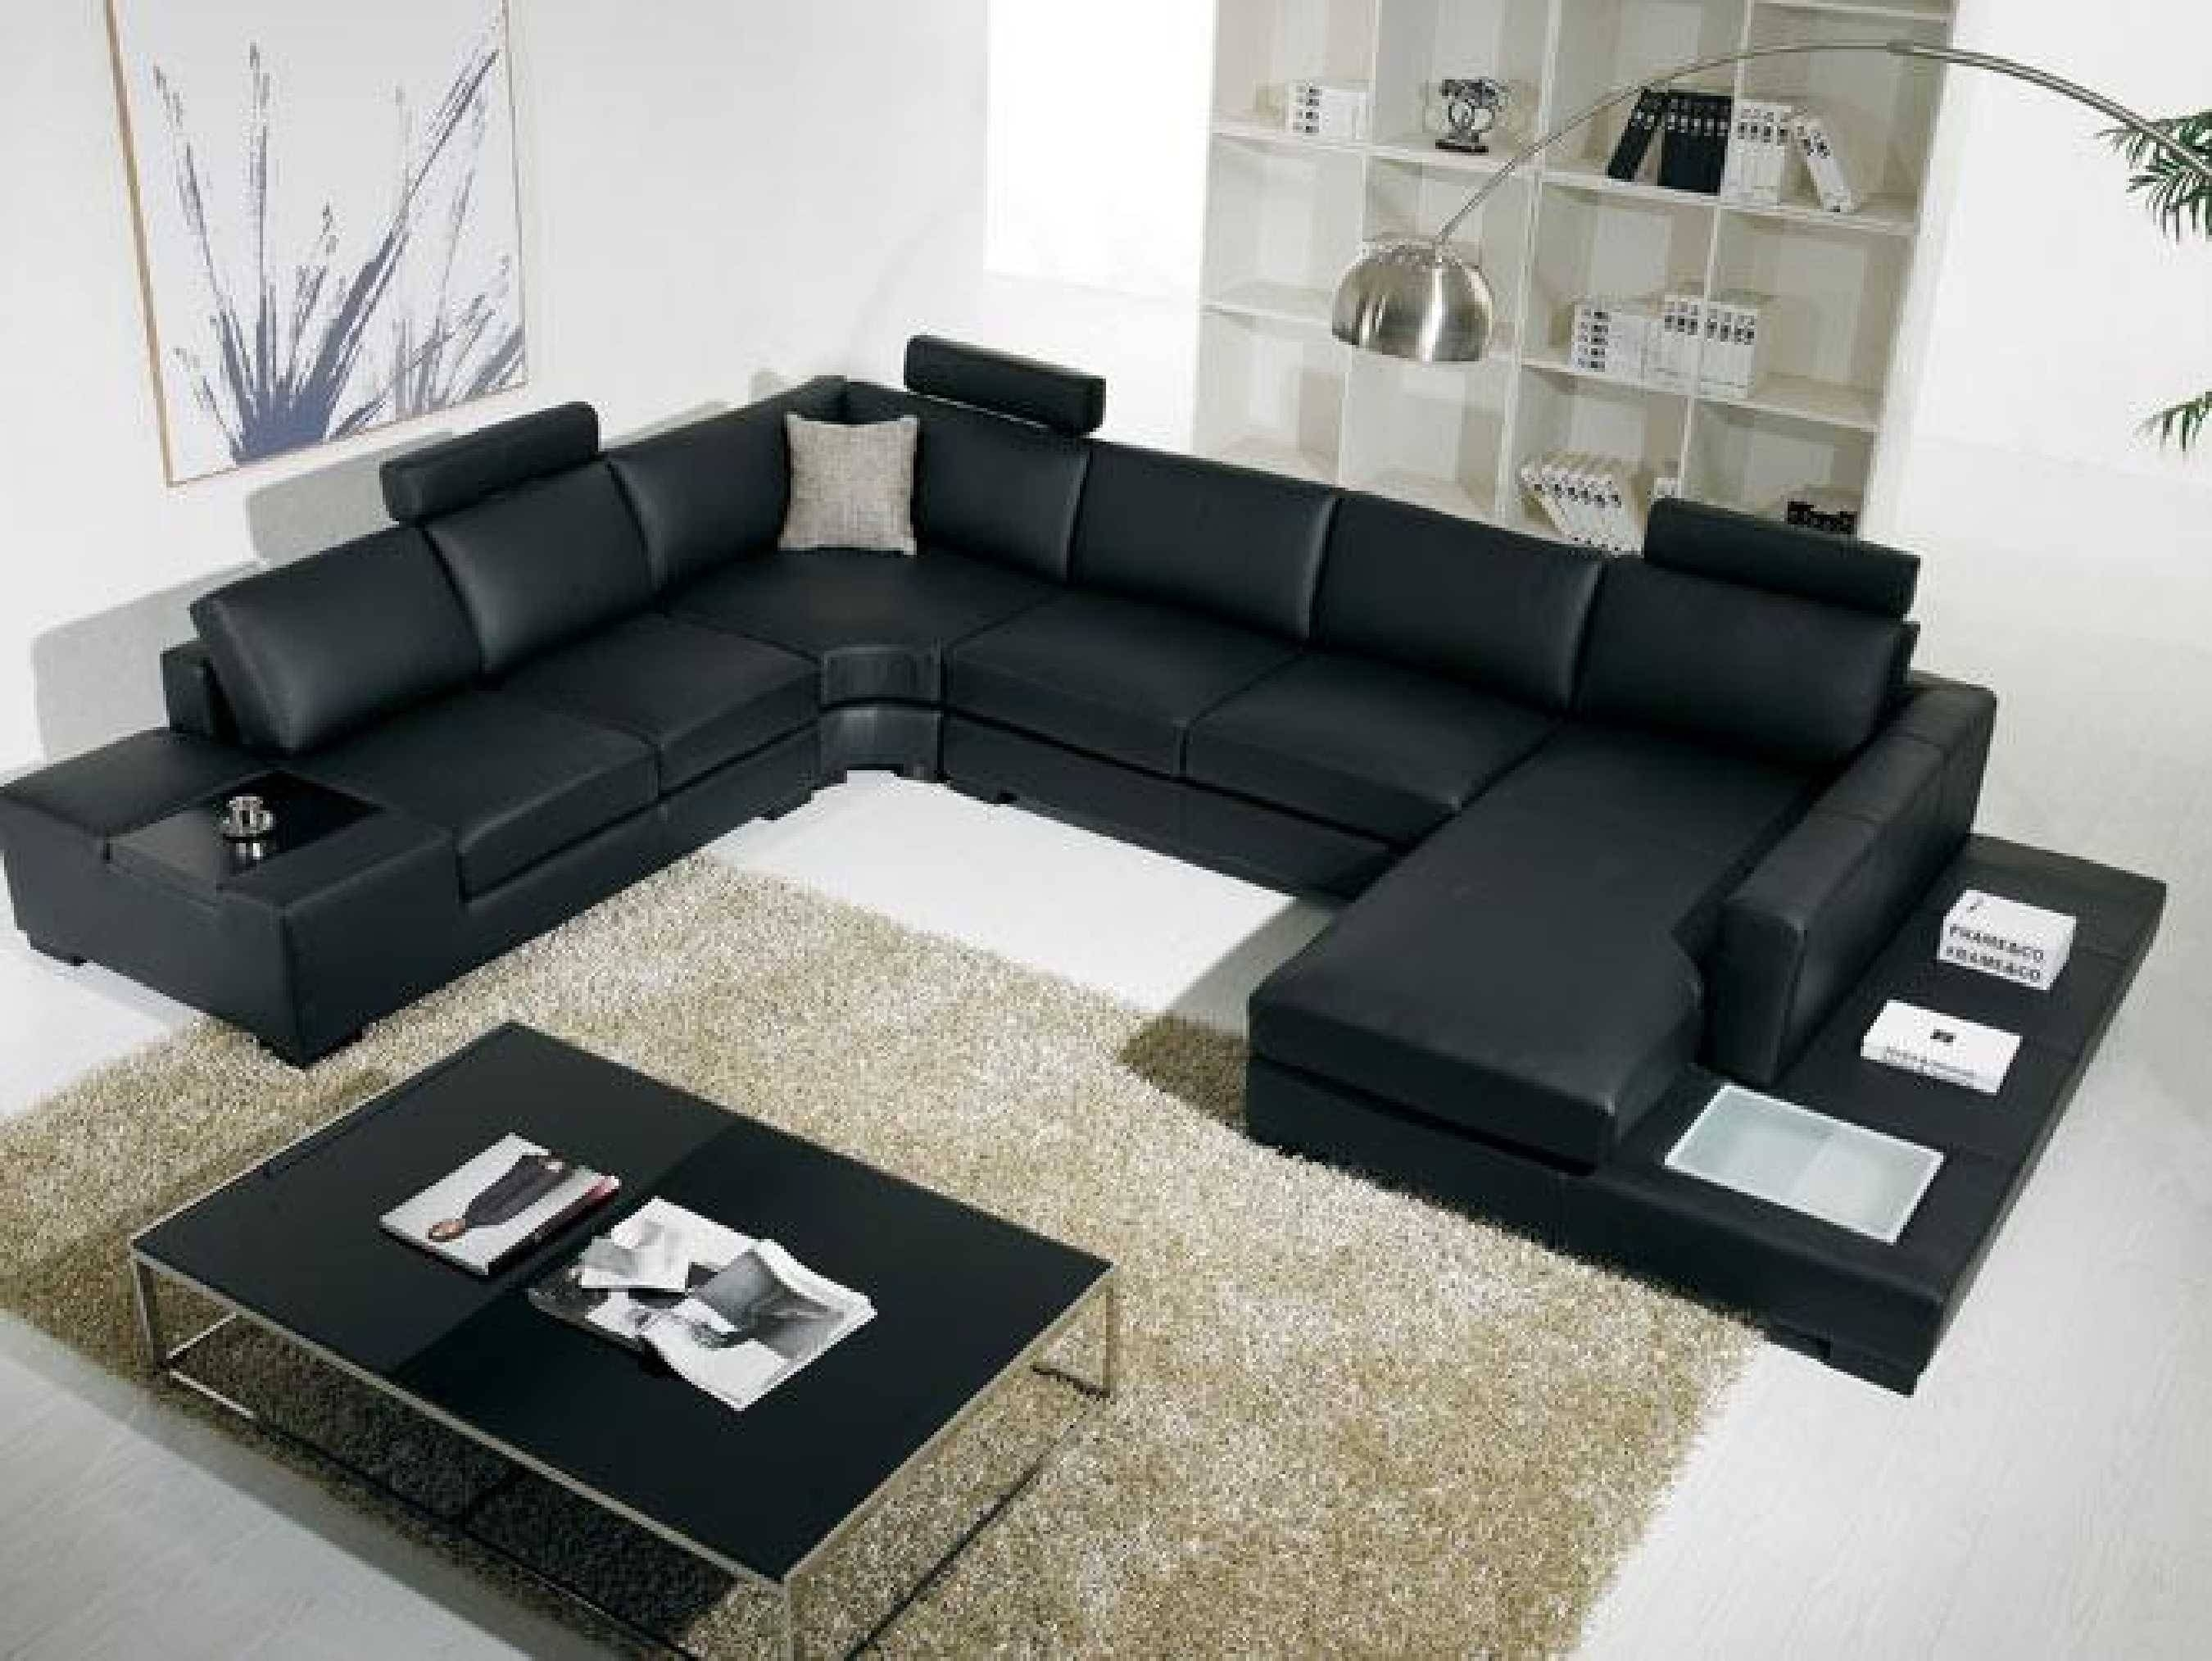 Marvelous Unique Sofa Beds Images Ideas - Andrea Outloud intended for Sectional Sofa Beds (Image 9 of 30)